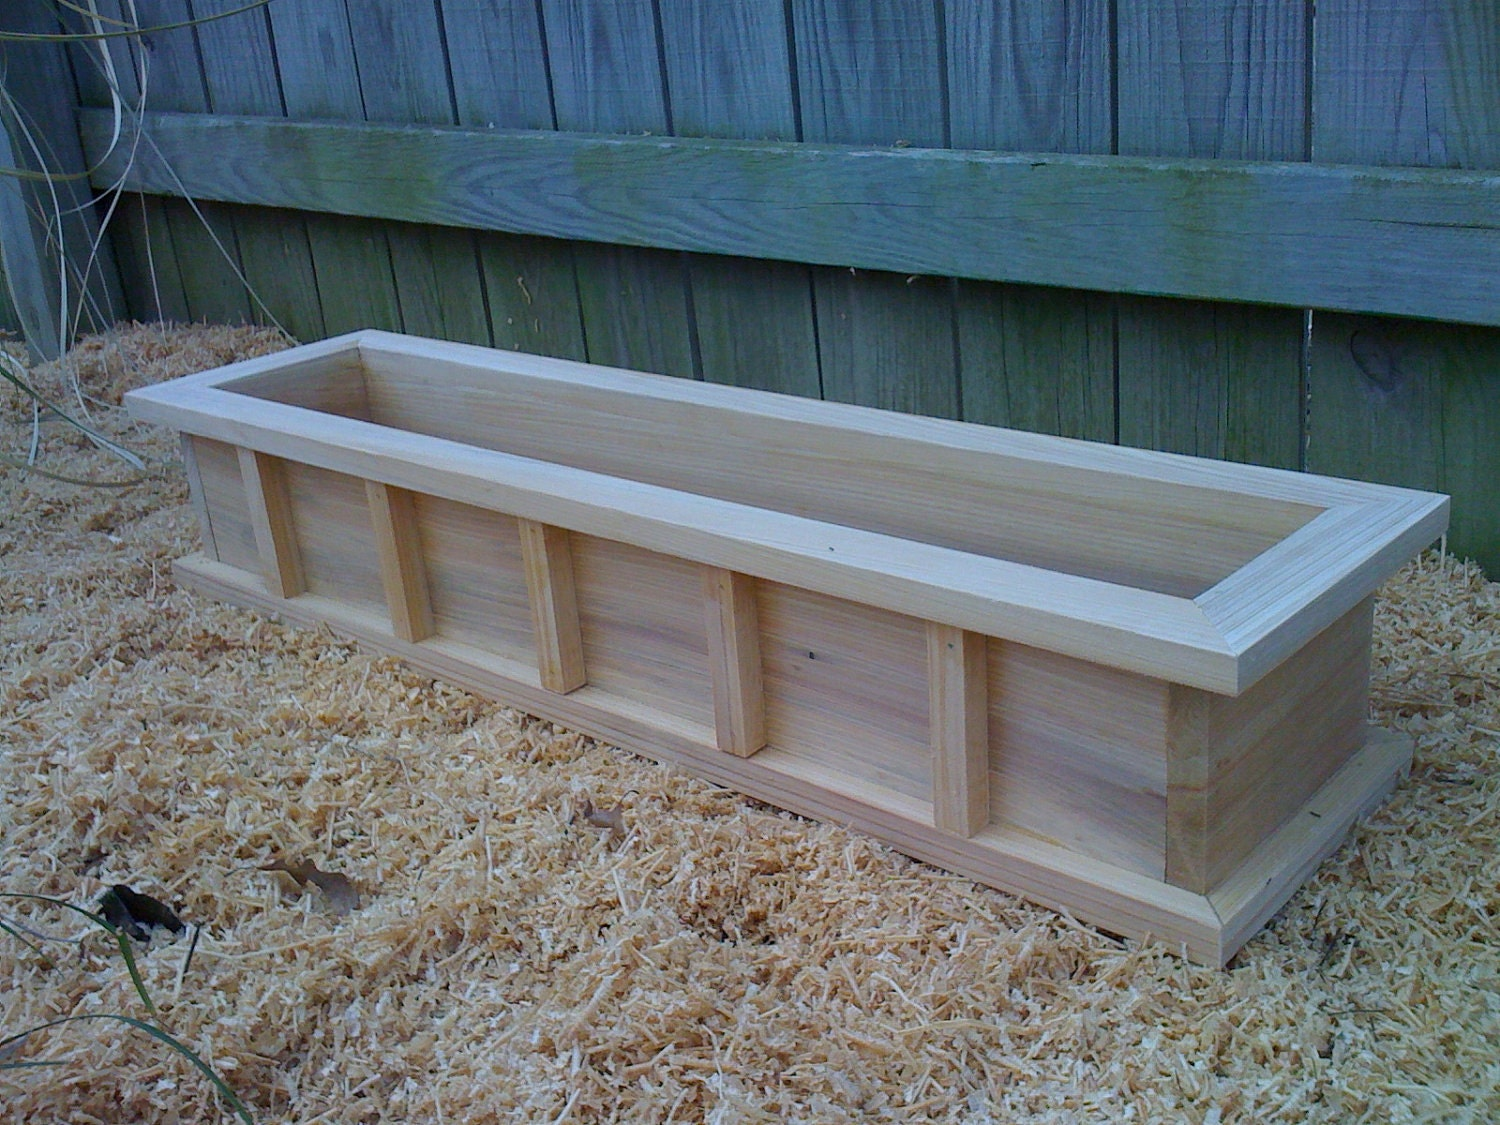 36 Window Box Cypress Wooden Planter Flower New Wood